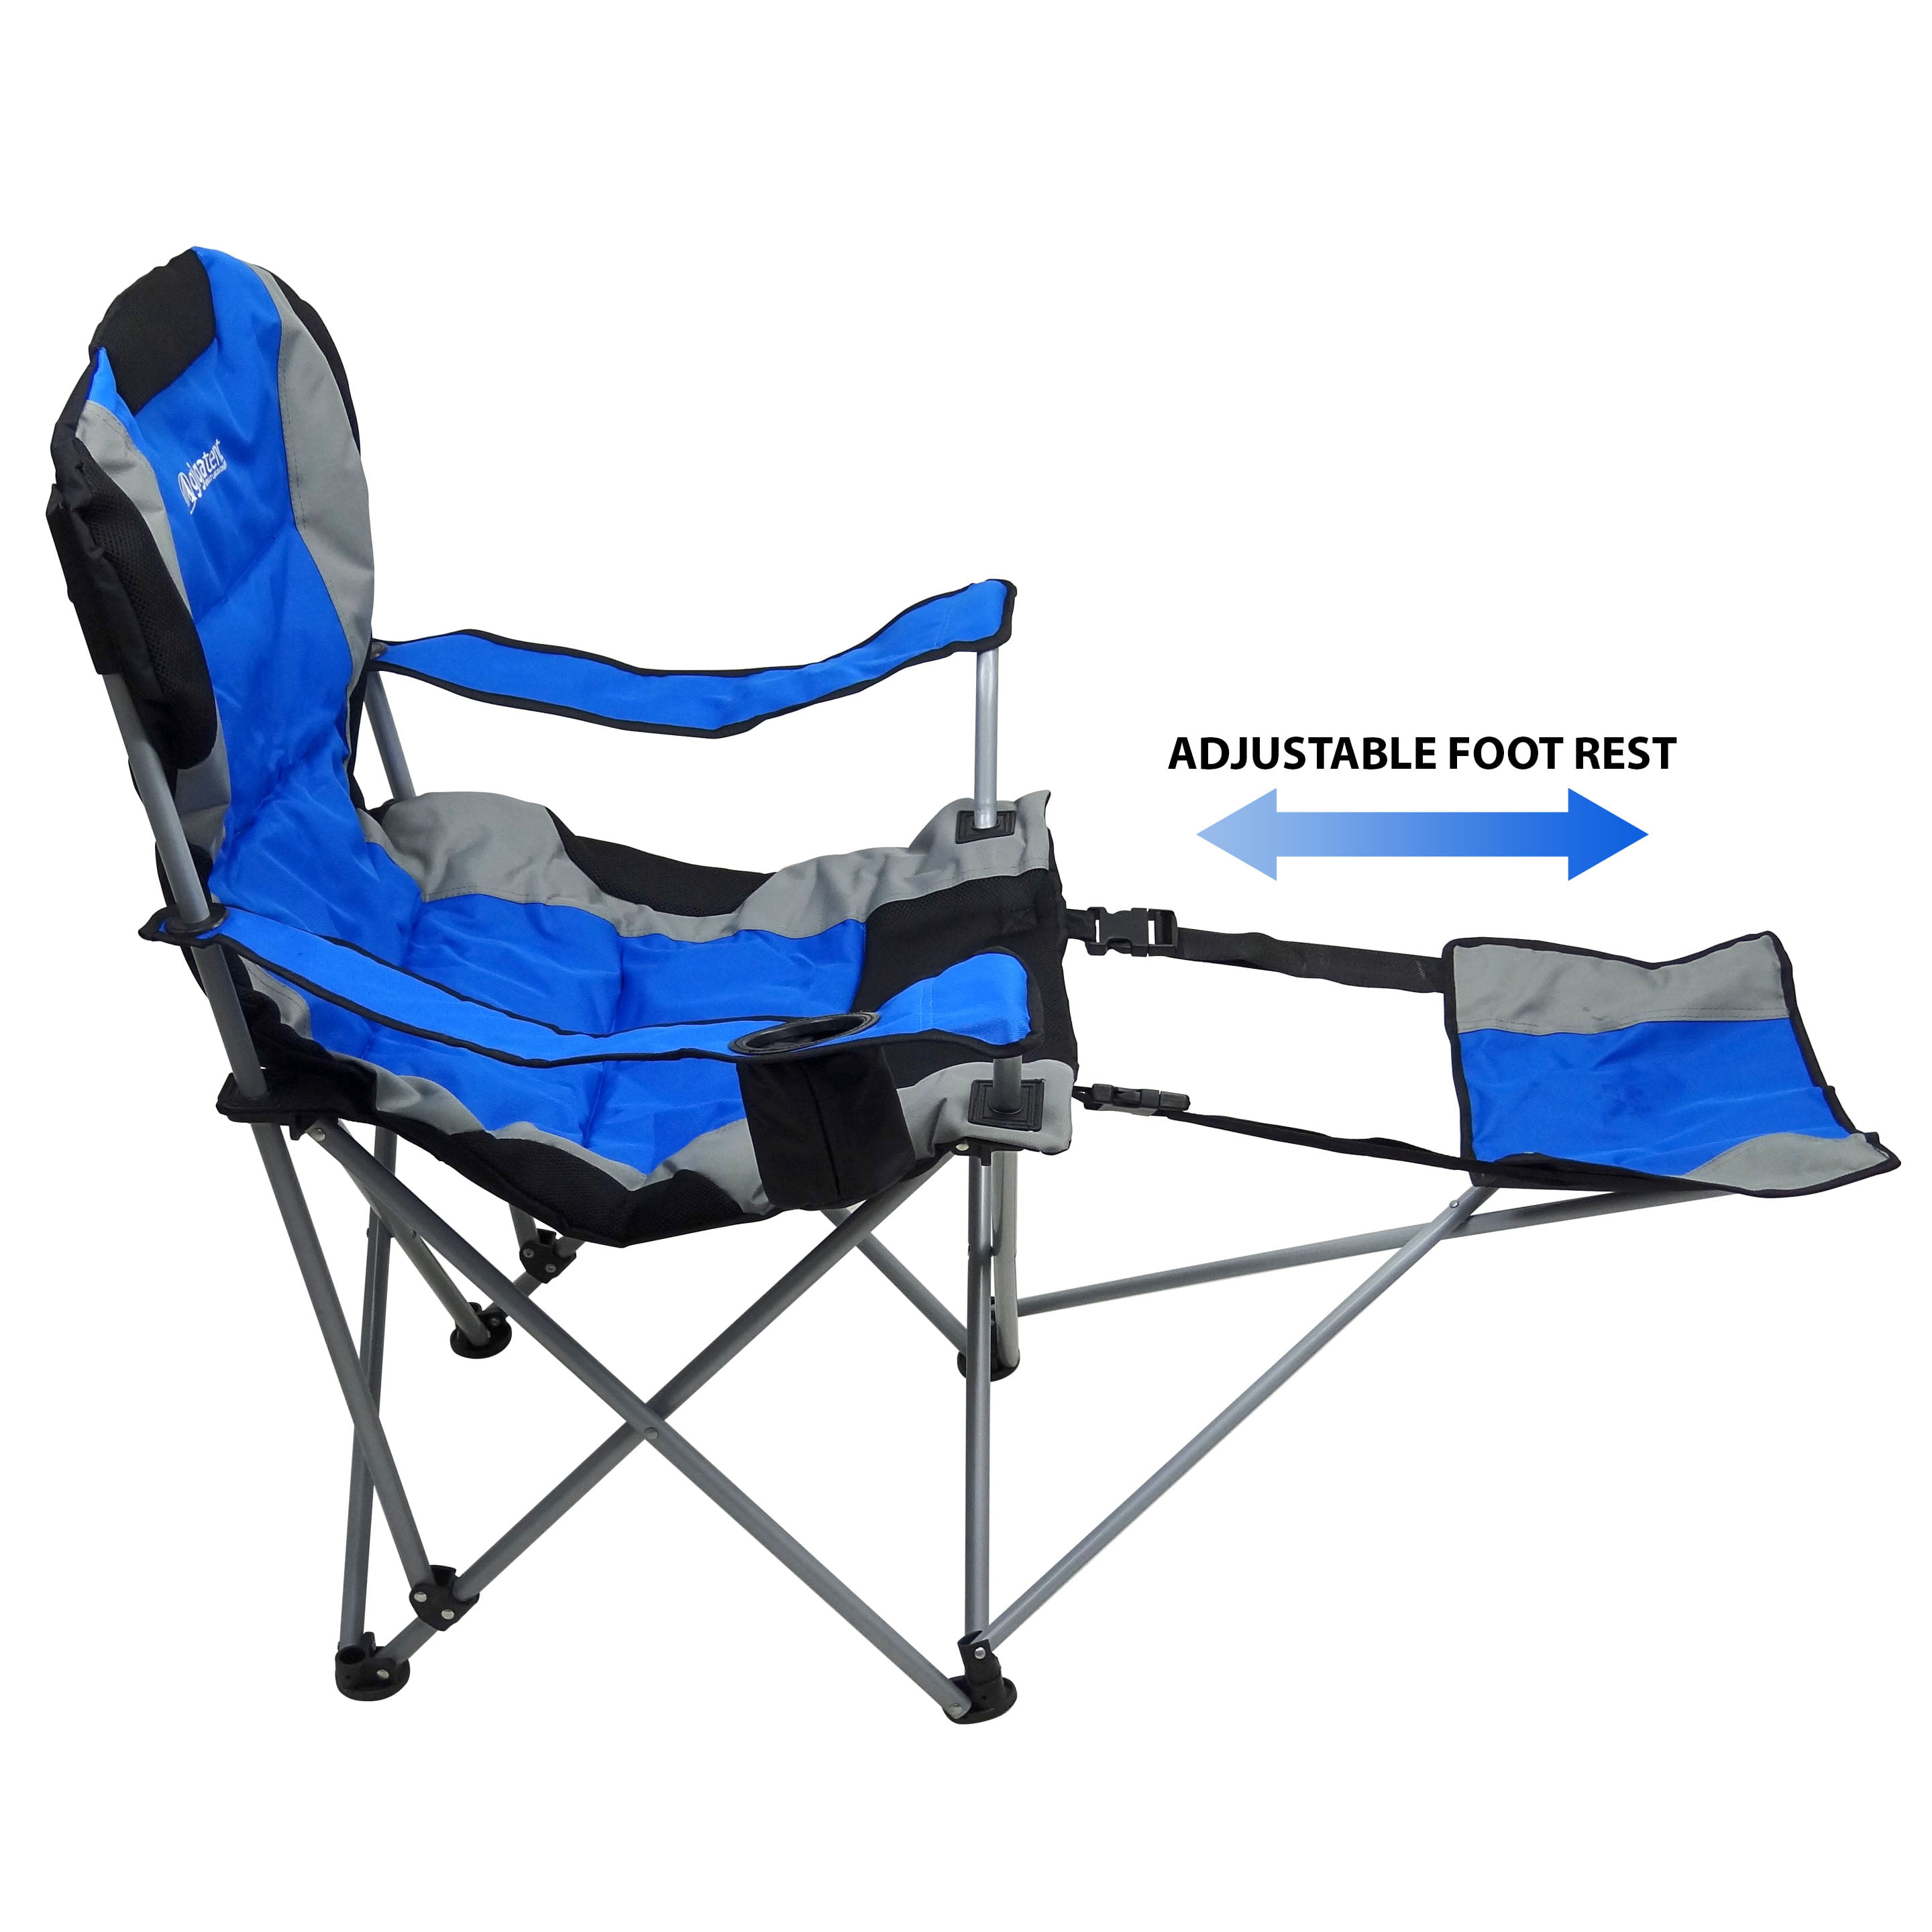 4ed456363a1 GigaTent Folding Camping Chair with Footrest - Walmart.com